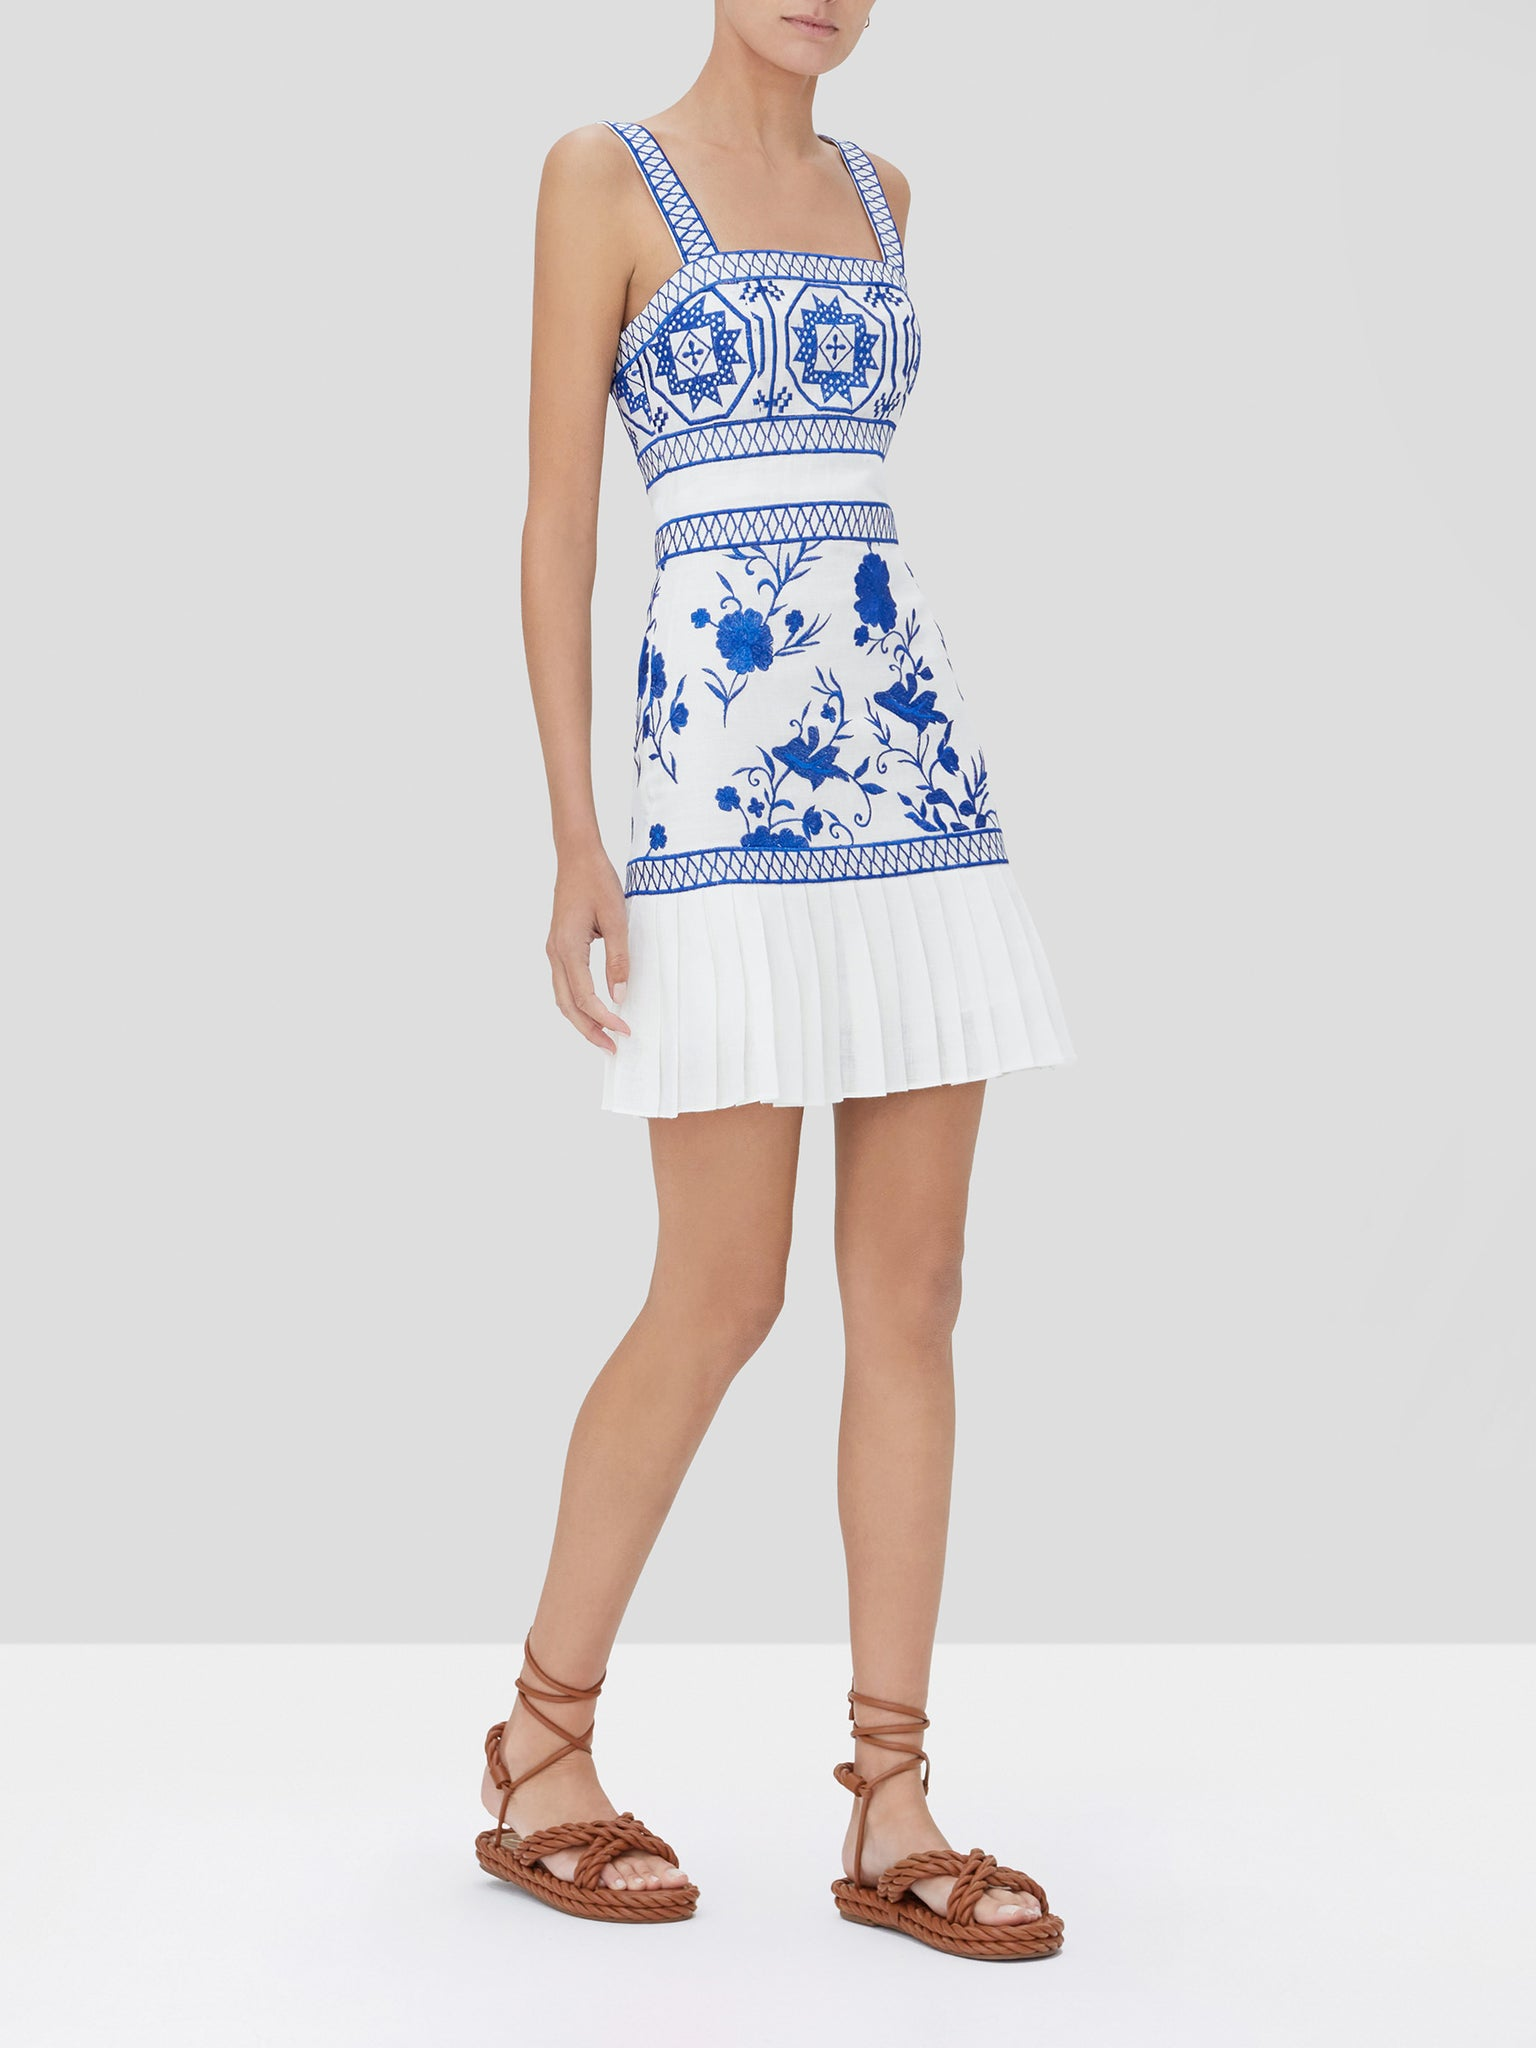 asteria dress in blue embroidery